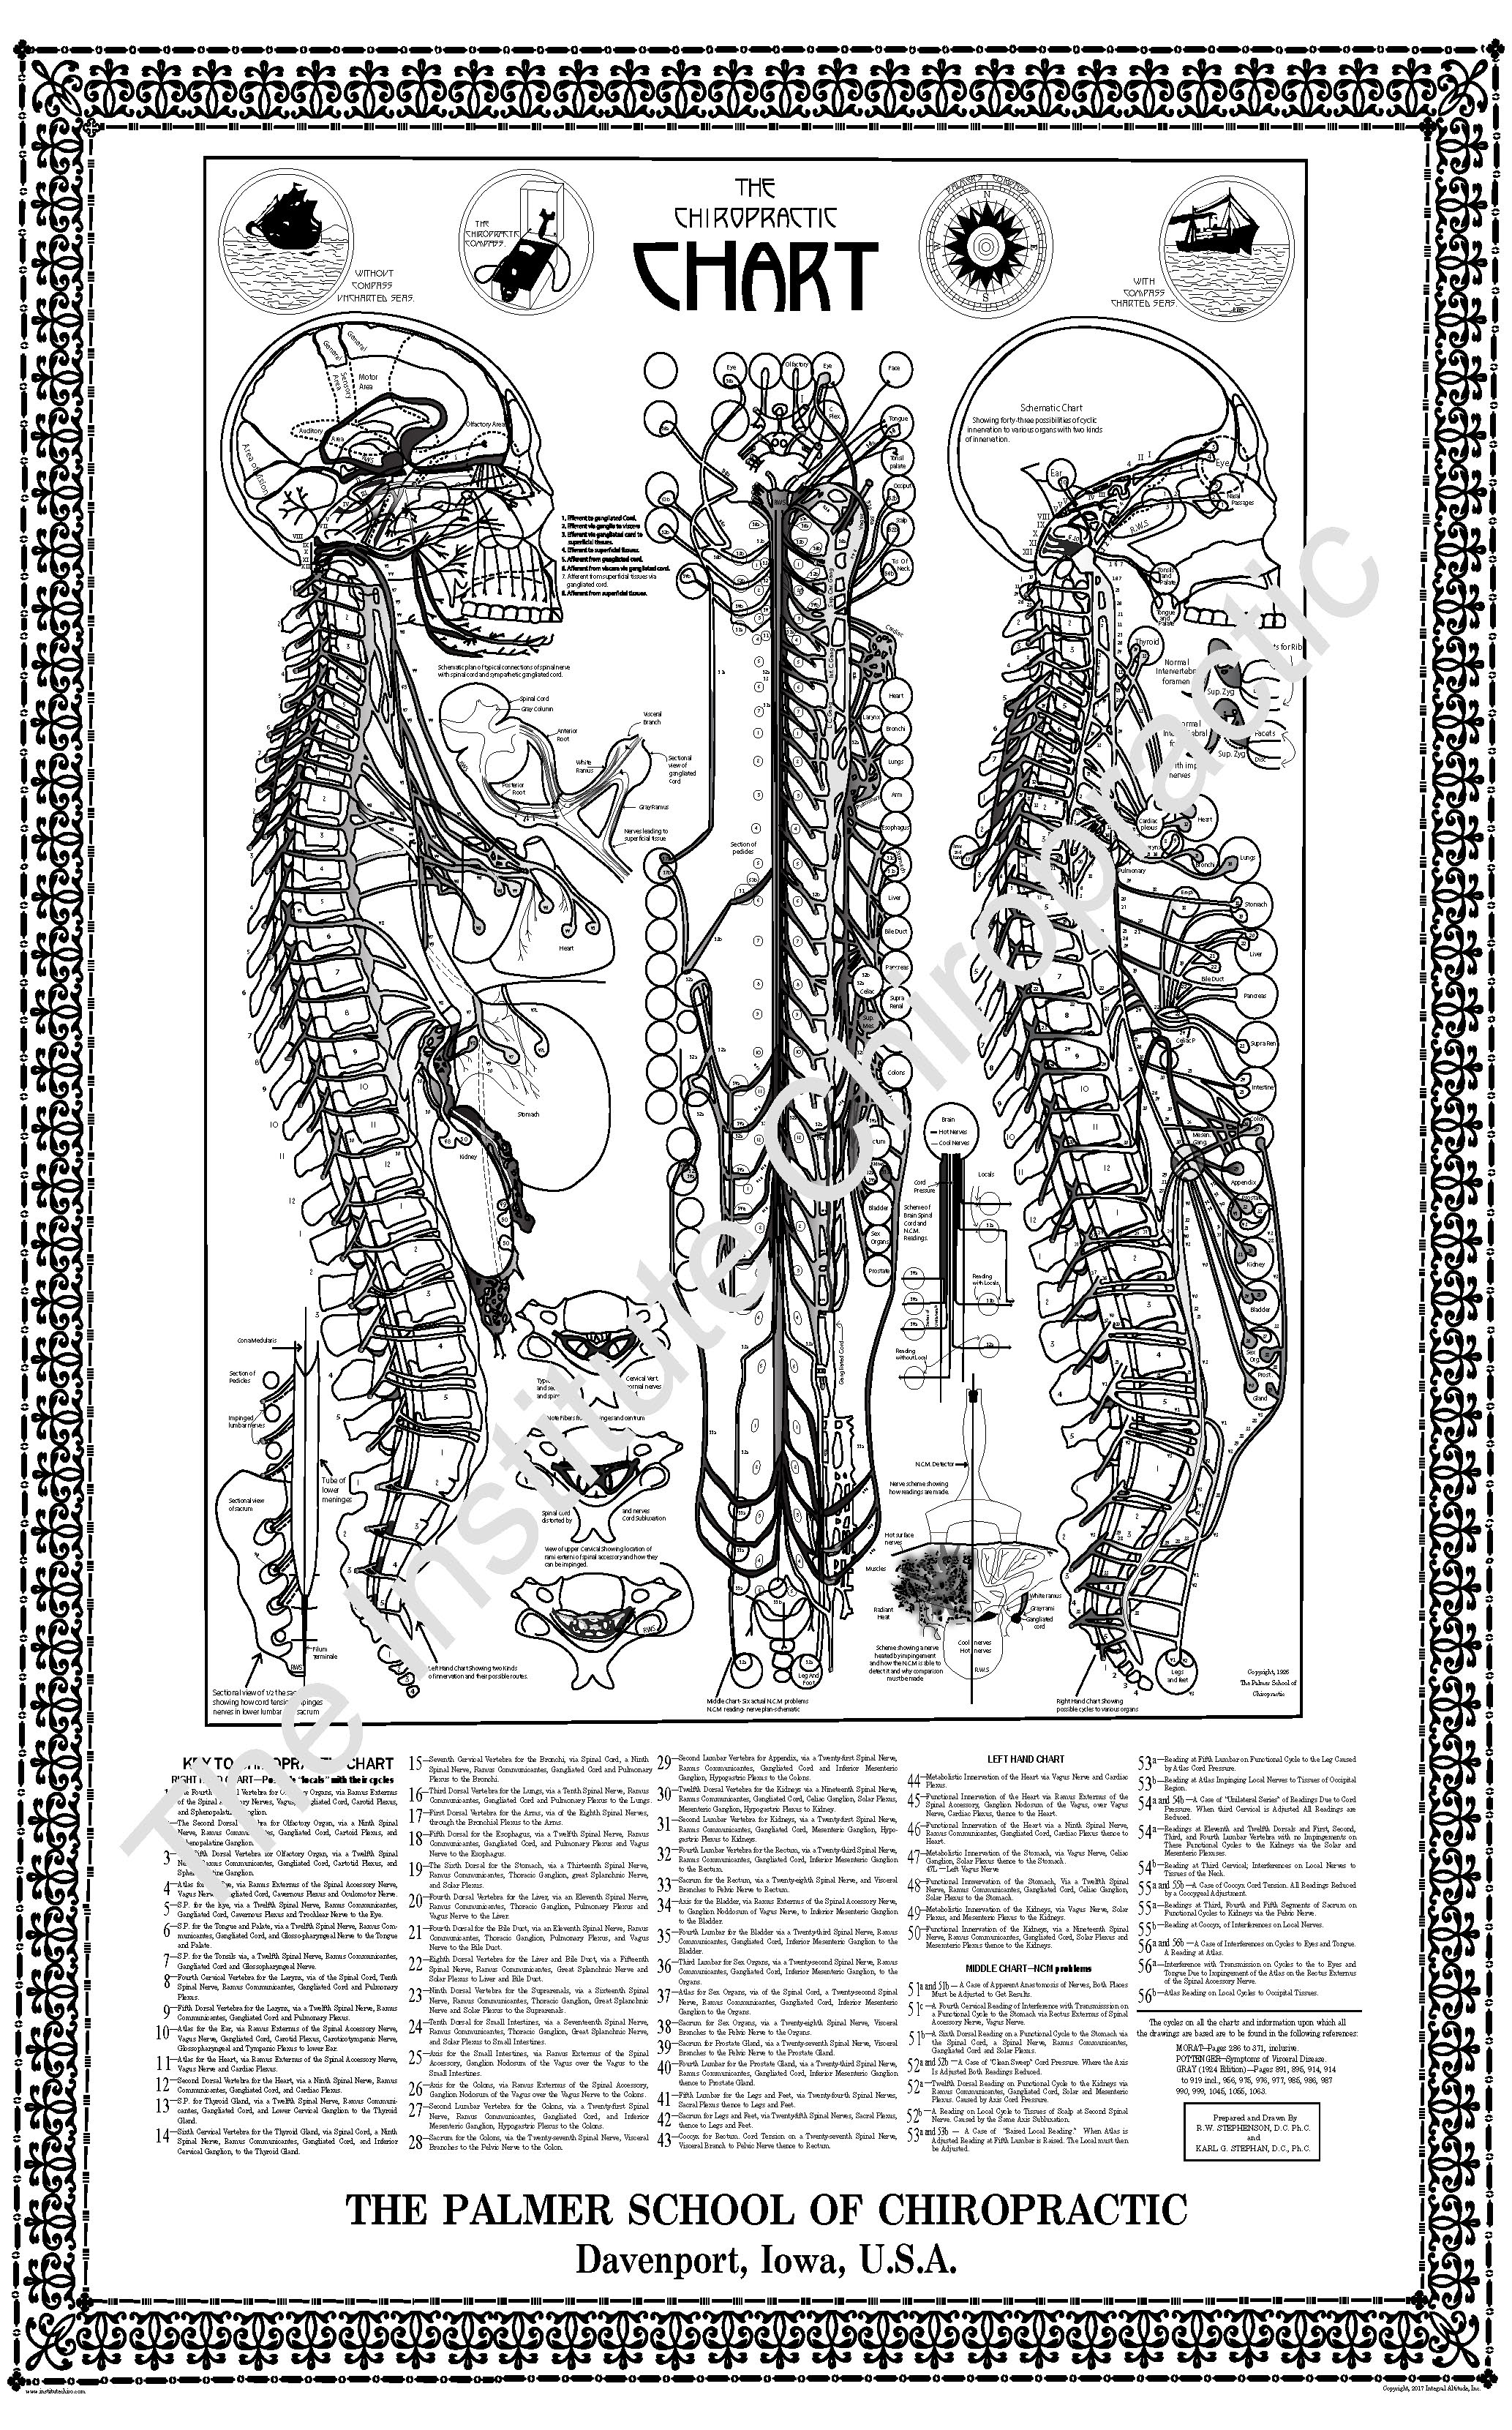 Stephenson S Chiropractic Chart 24 By 36